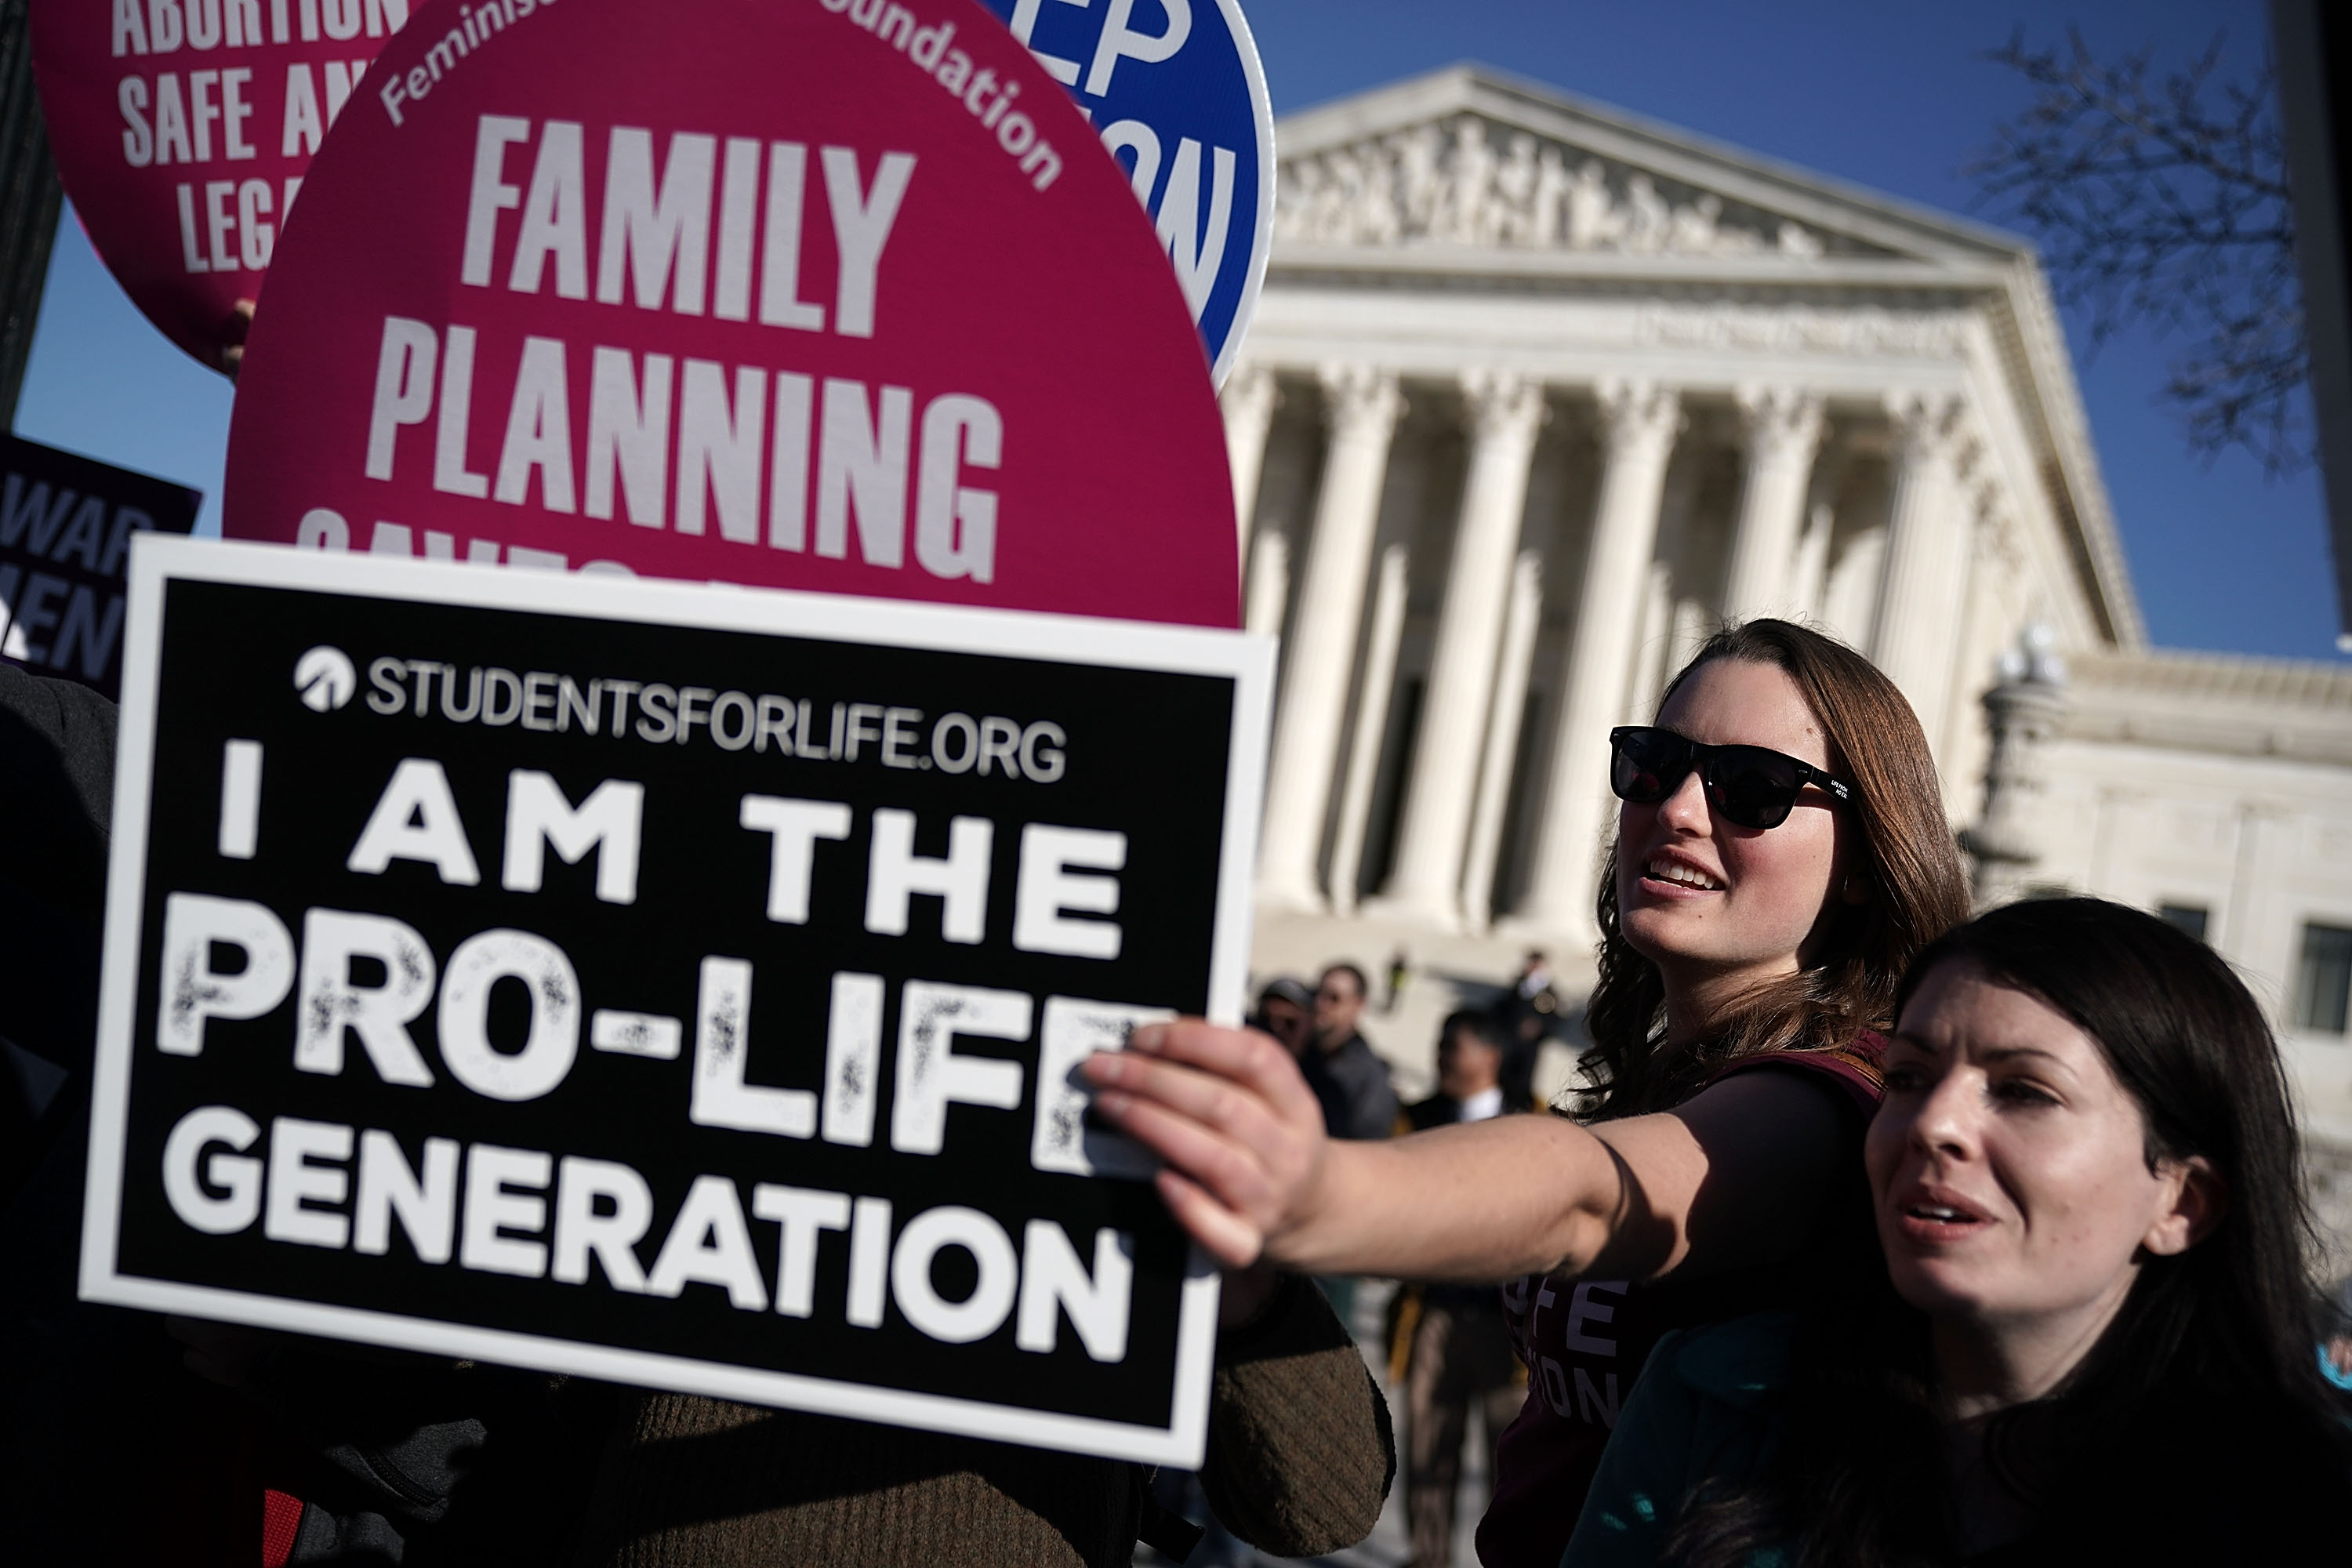 """Alabama's near-total abortion ban is the ultimate elevation of the """"unborn"""" over women"""